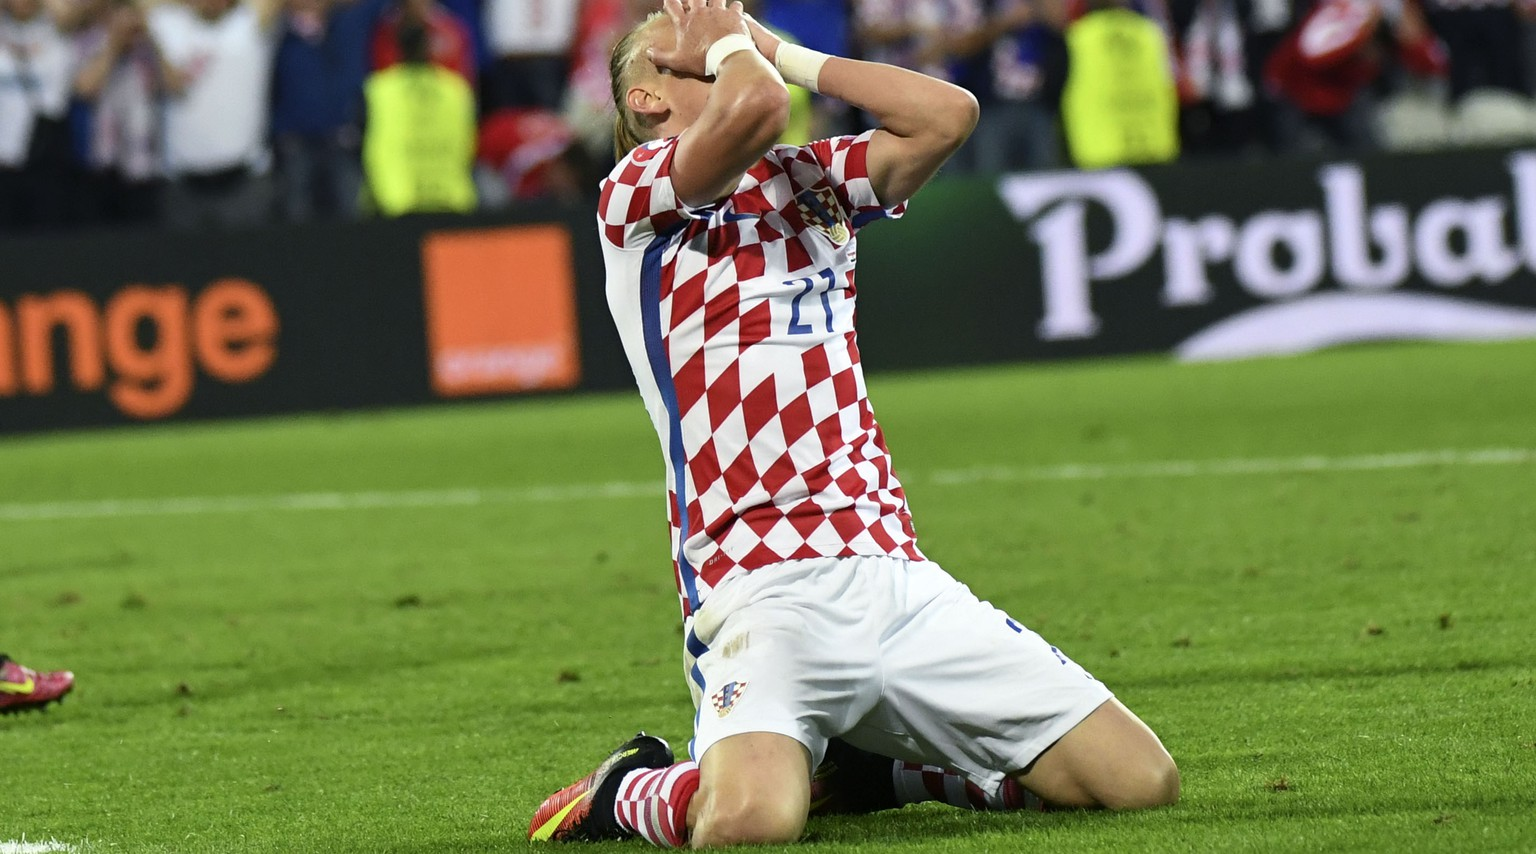 Croatia's Domagoj Vida reacts at the end of the Euro 2016 round of 16 soccer match between Croatia and Portugal at the Bollaert stadium in Lens, France, Saturday, June 25, 2016. (AP Photo/Geert Vanden Wijngaert)